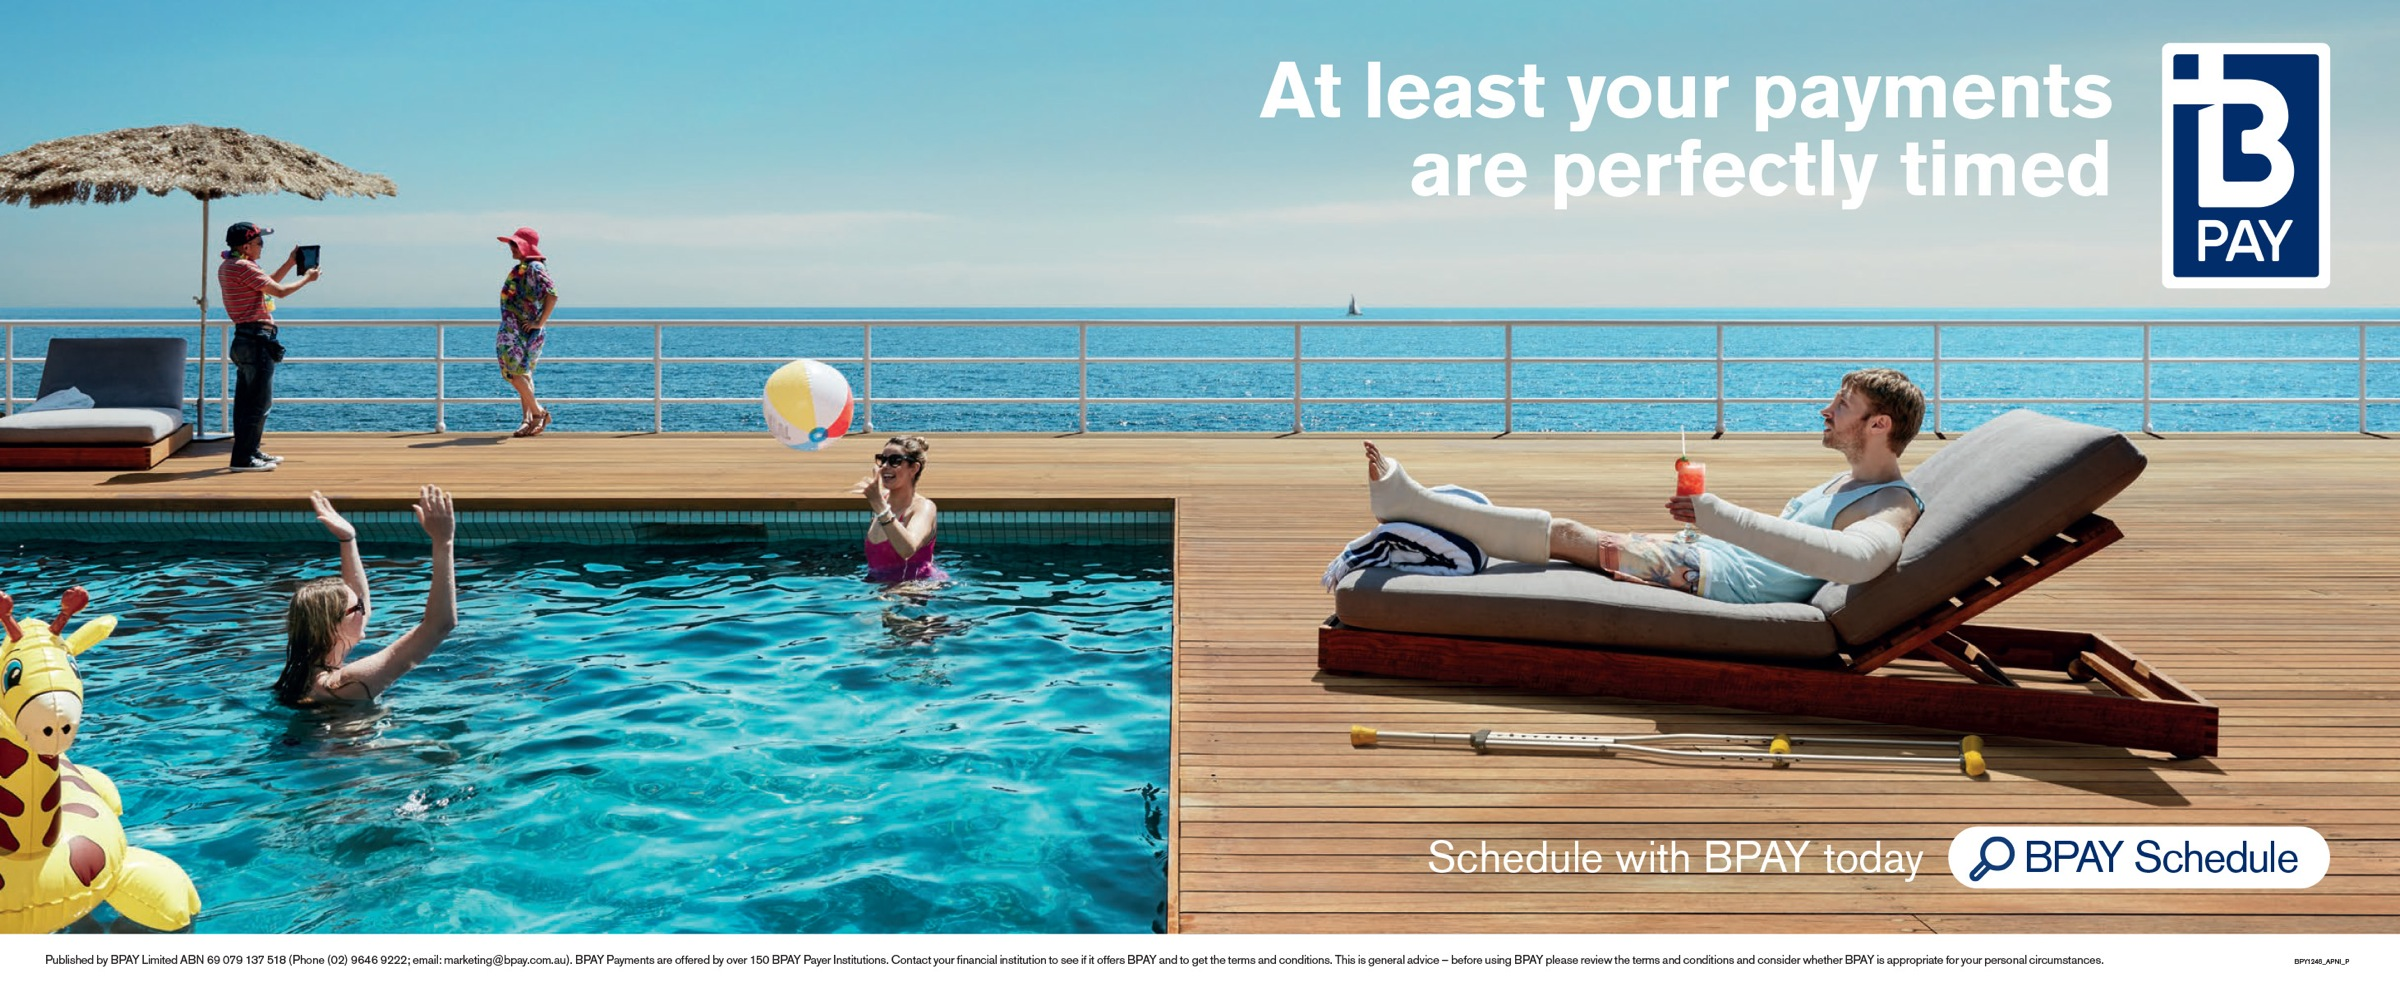 Bpay Print Advert By Bmf Pool Ads Of The World